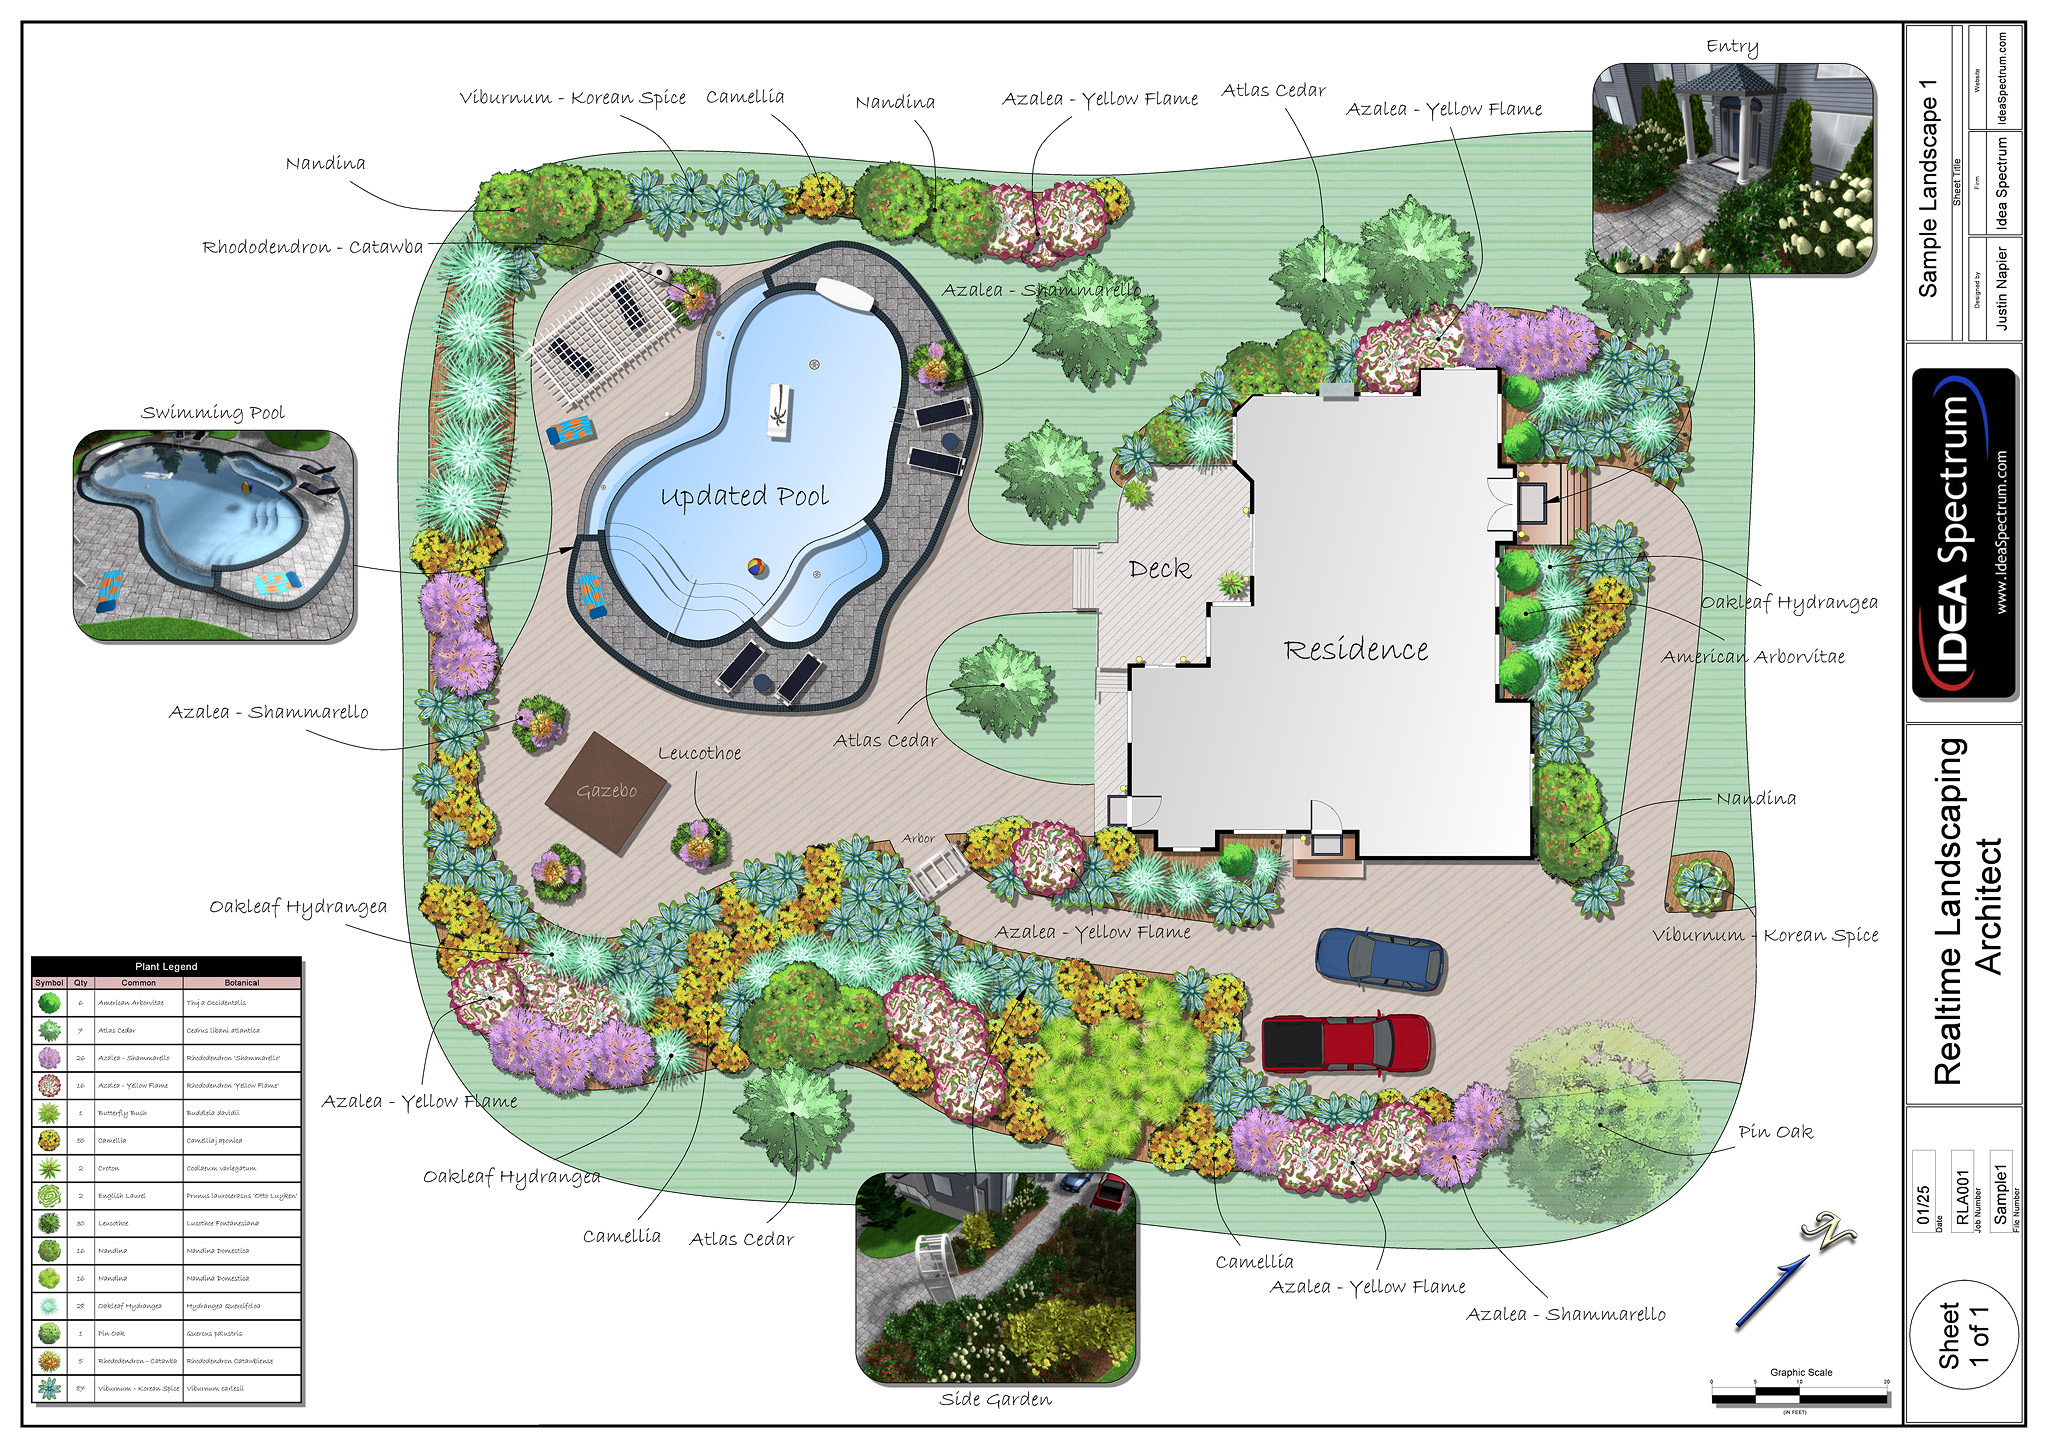 Landscape Design Software by Idea Spectrum - Realtime Landscaping ...